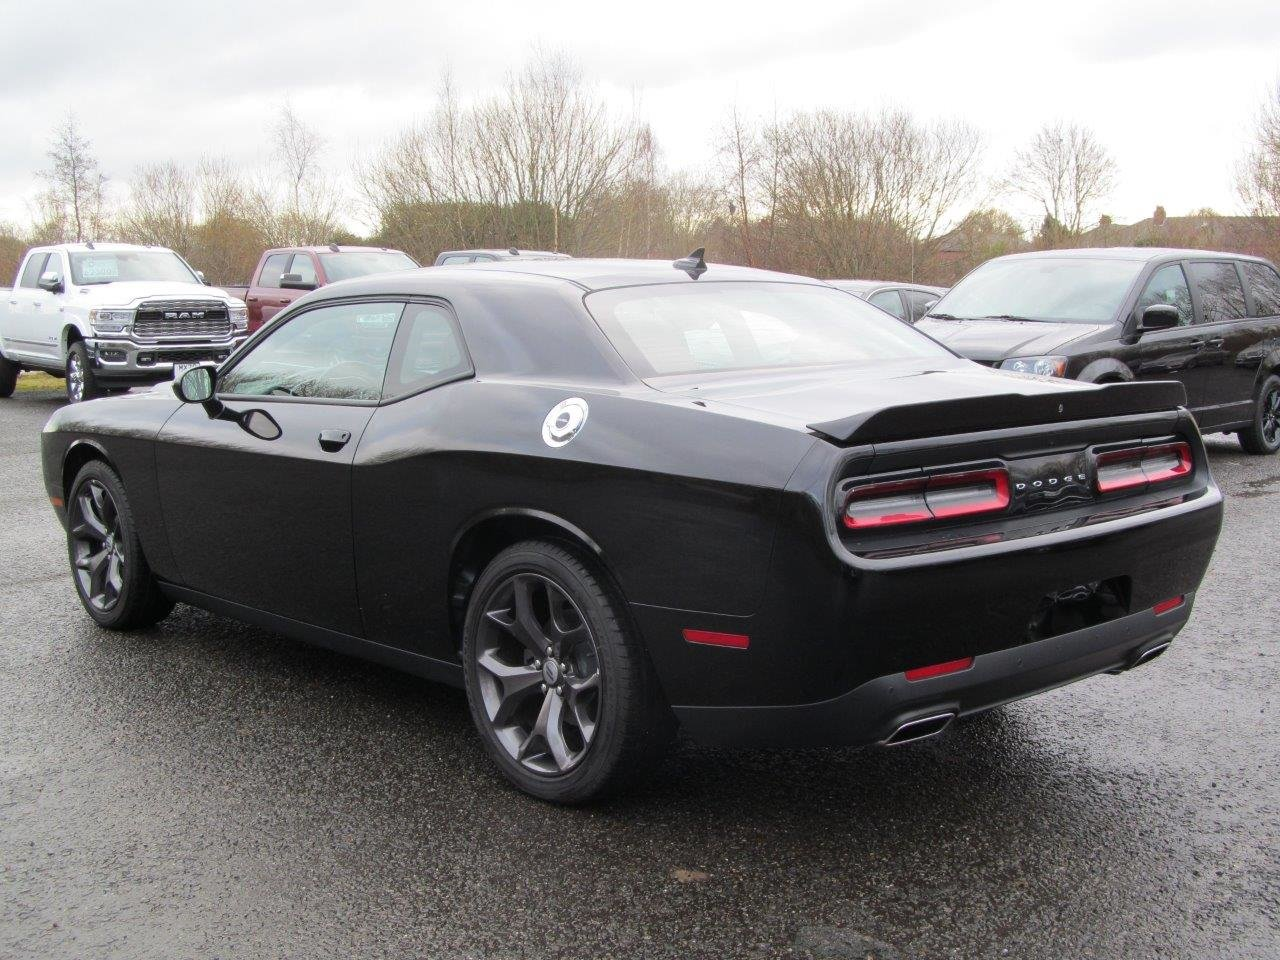 2020 Dodge Challenger SXT Plus RWD 8-Speed Automatic LHD For Sale (picture 2 of 12)